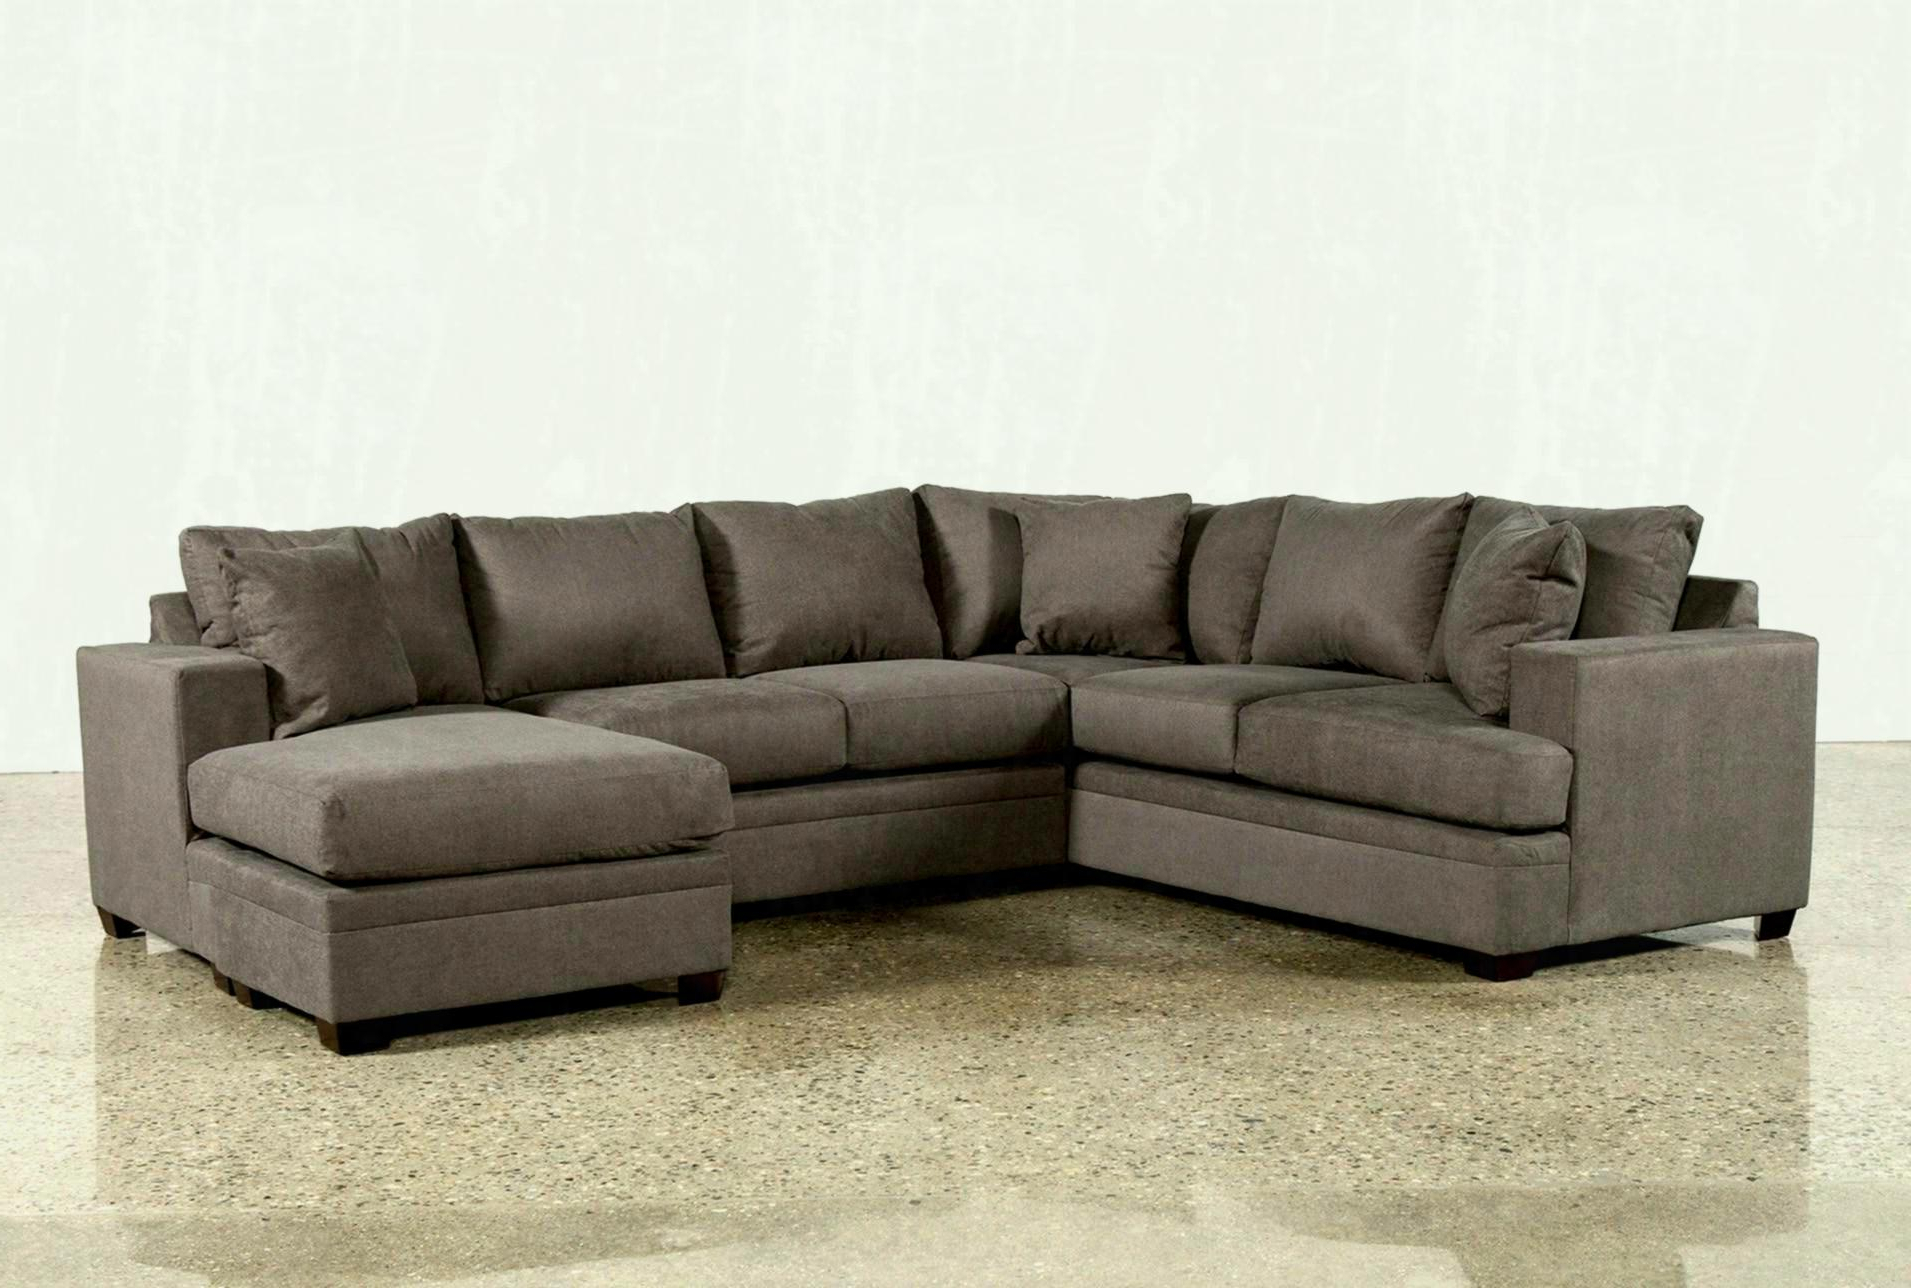 Most Popular Aquarius Light Grey 2 Piece Sectionals With Laf Chaise Inside Added To Cart Kerri Piece Sectional W Raf Chaise Living Spaces (Gallery 16 of 20)